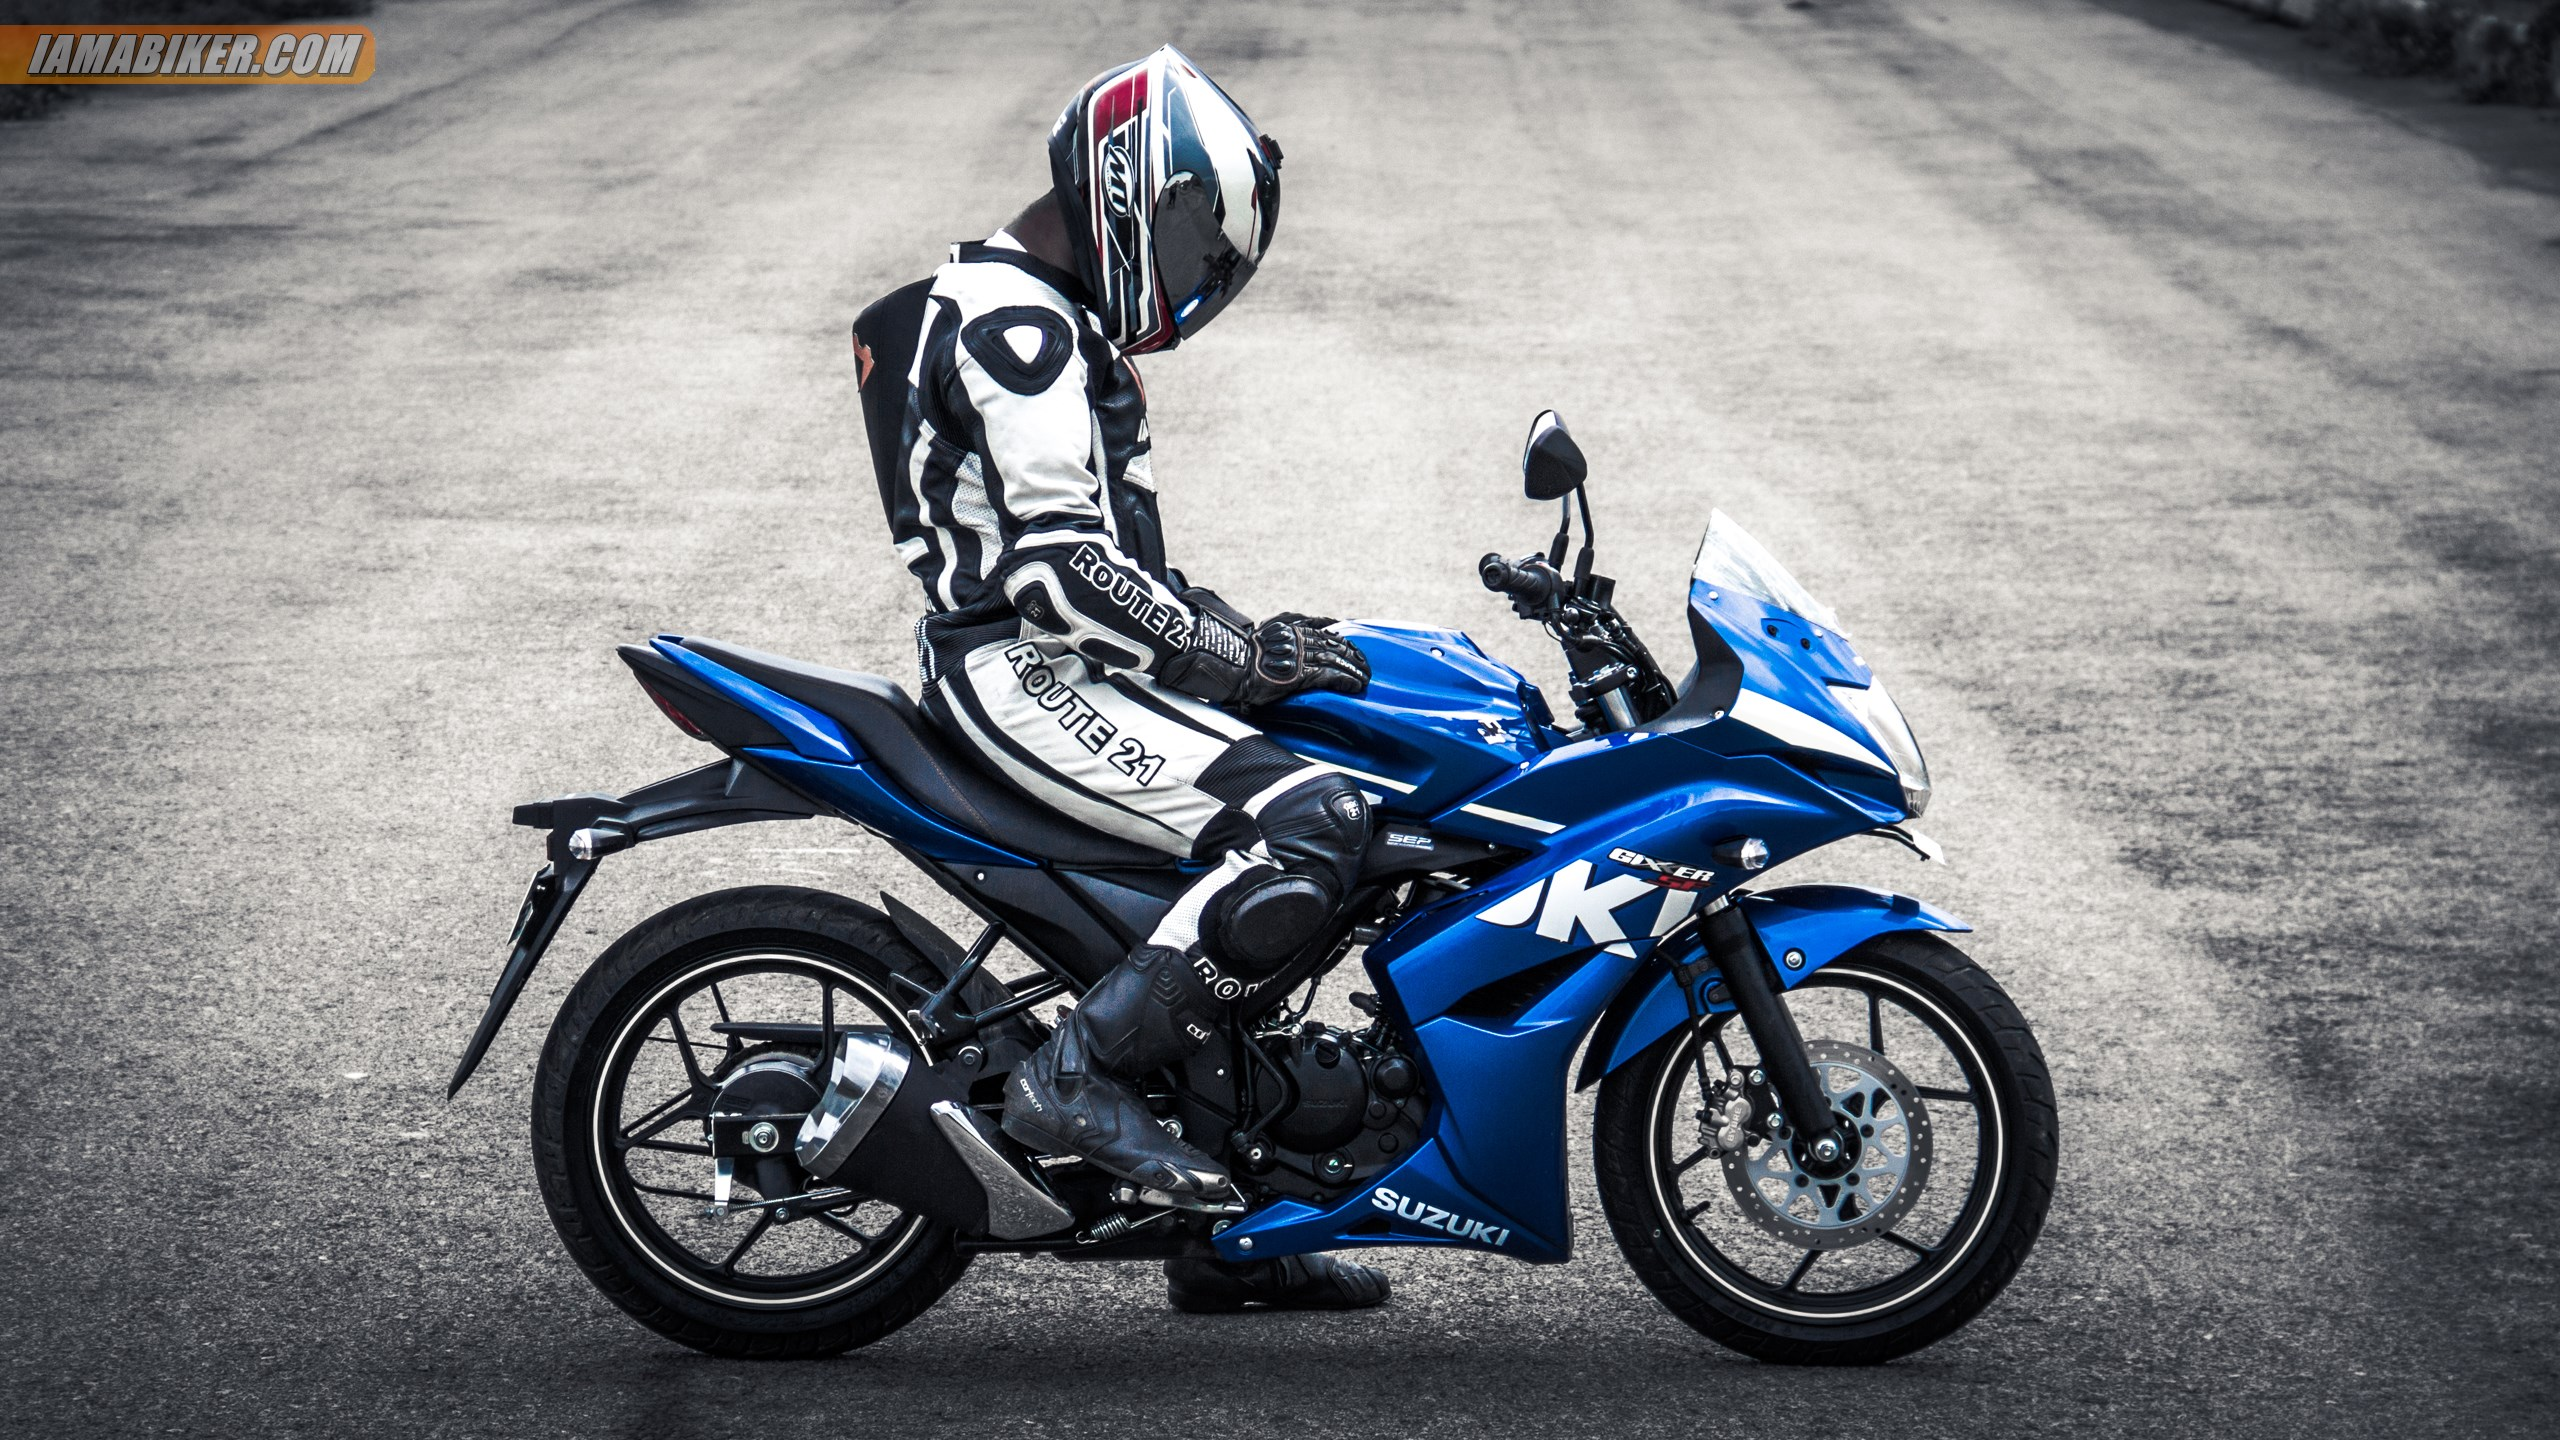 Suzuki Gixxer SF review